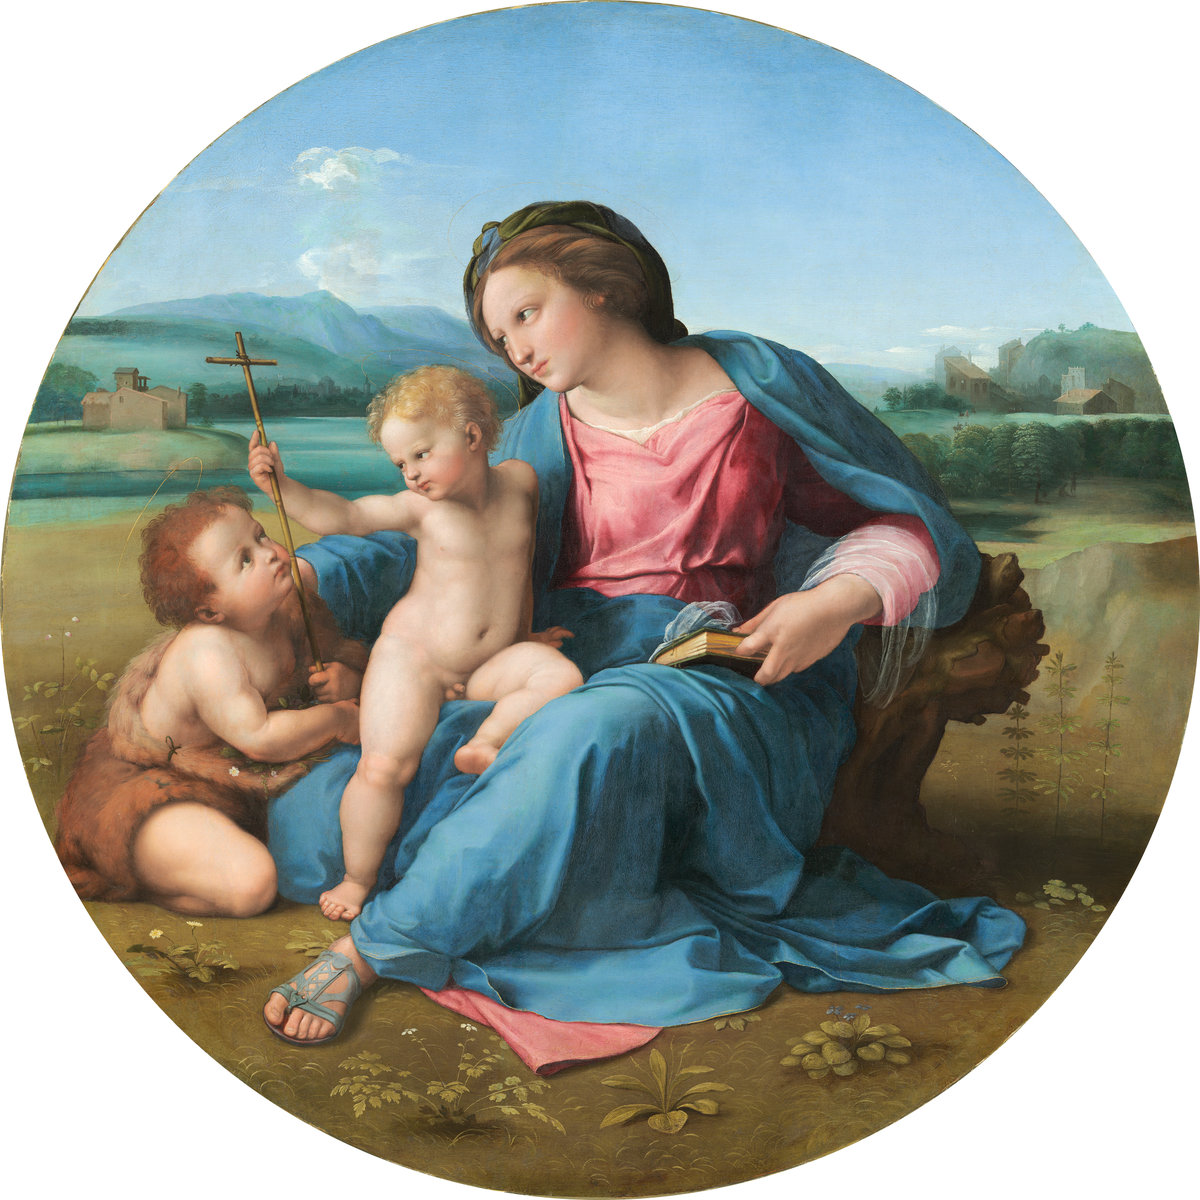 Raphael (Italian, 1483 - 1520 ), The Alba Madonna, c. 1510, oil on panel transferred to canvas. Washington, National Gallery, Andrew W. Mellon Collection. Photo: National Gallery